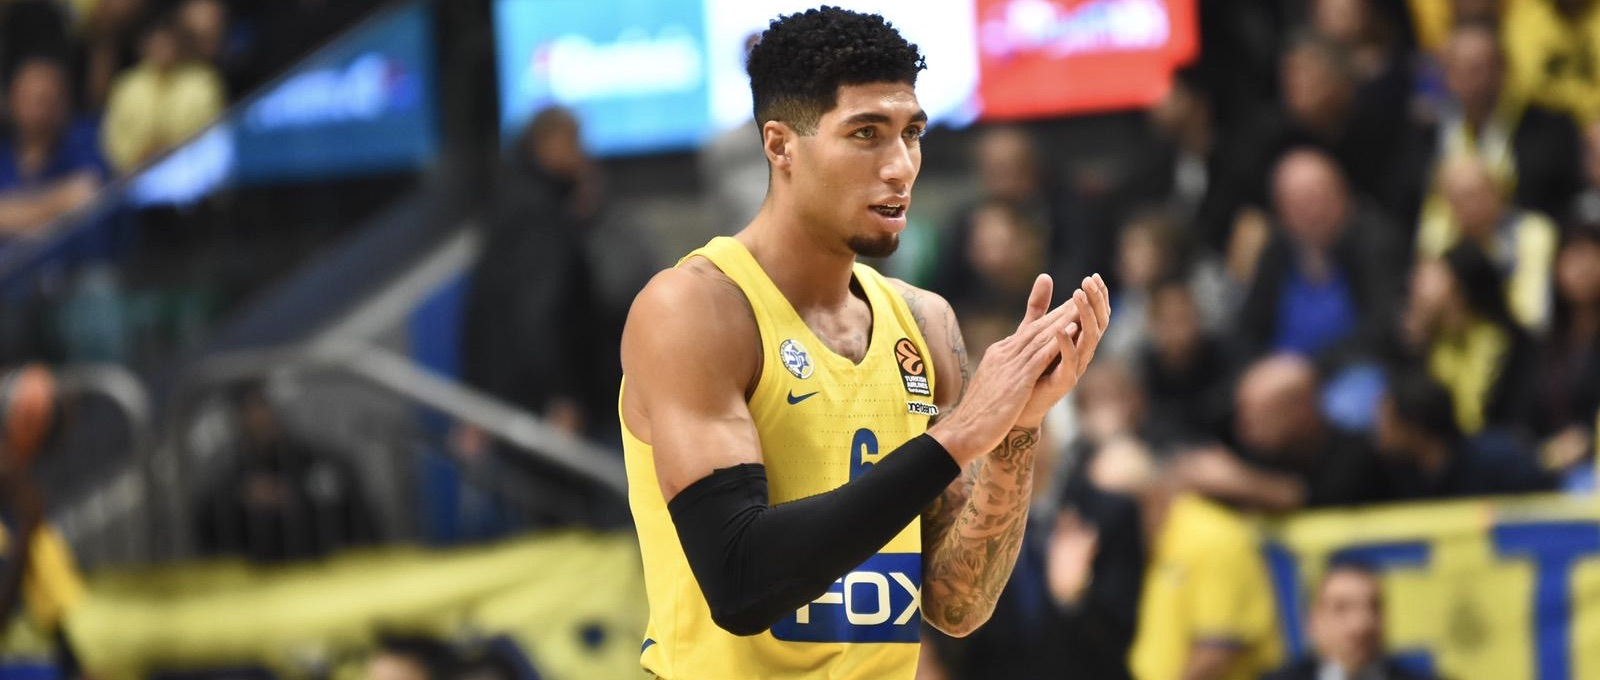 """I feel that I can have an impact on winning and I can do a lot of things that can help this team"" Sandy Cohen Stars for Maccabi in Championship Victory"